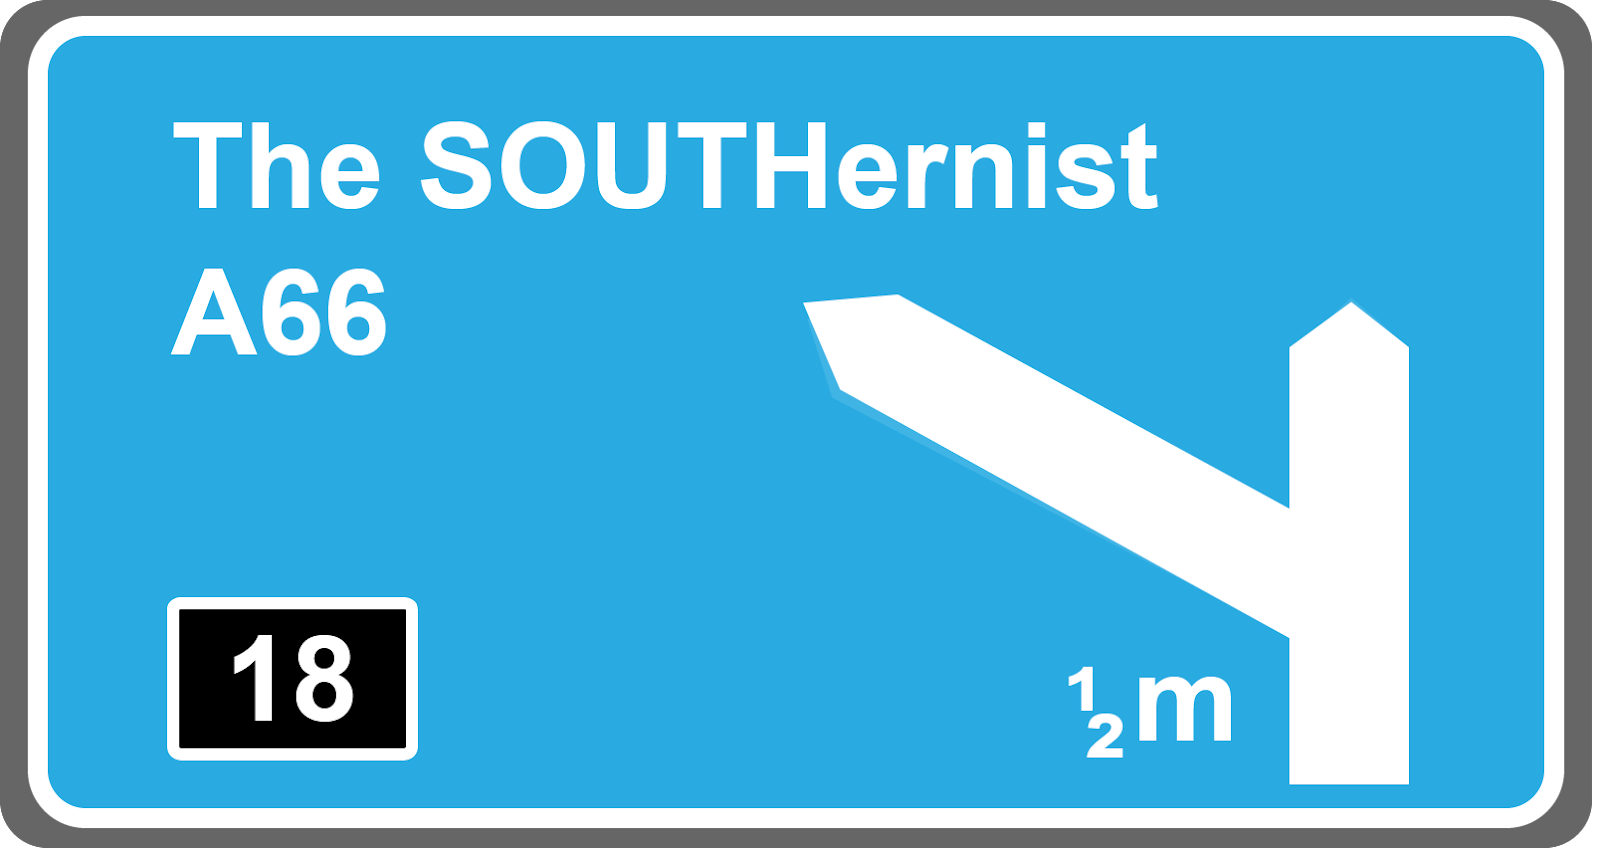 Follow The Southernist